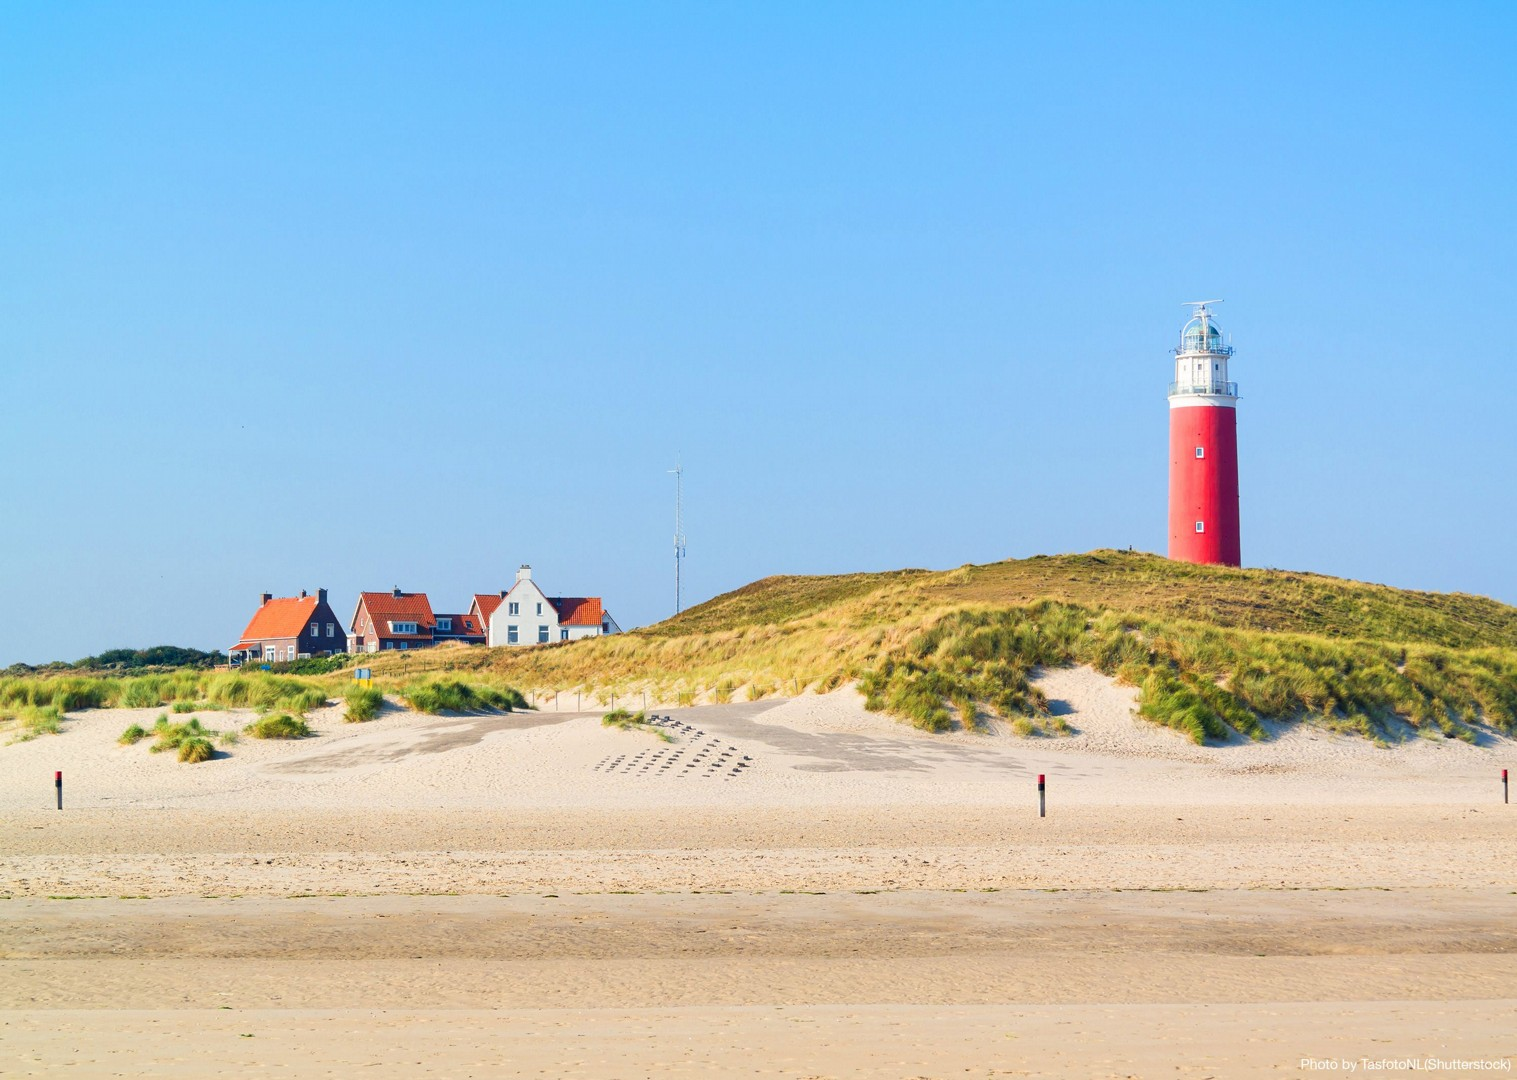 golden-beaches-to-explore-at-your-own-pace.jpg - Holland - Windmills and Golden Beaches - Bike and Barge Holiday - Family Cycling